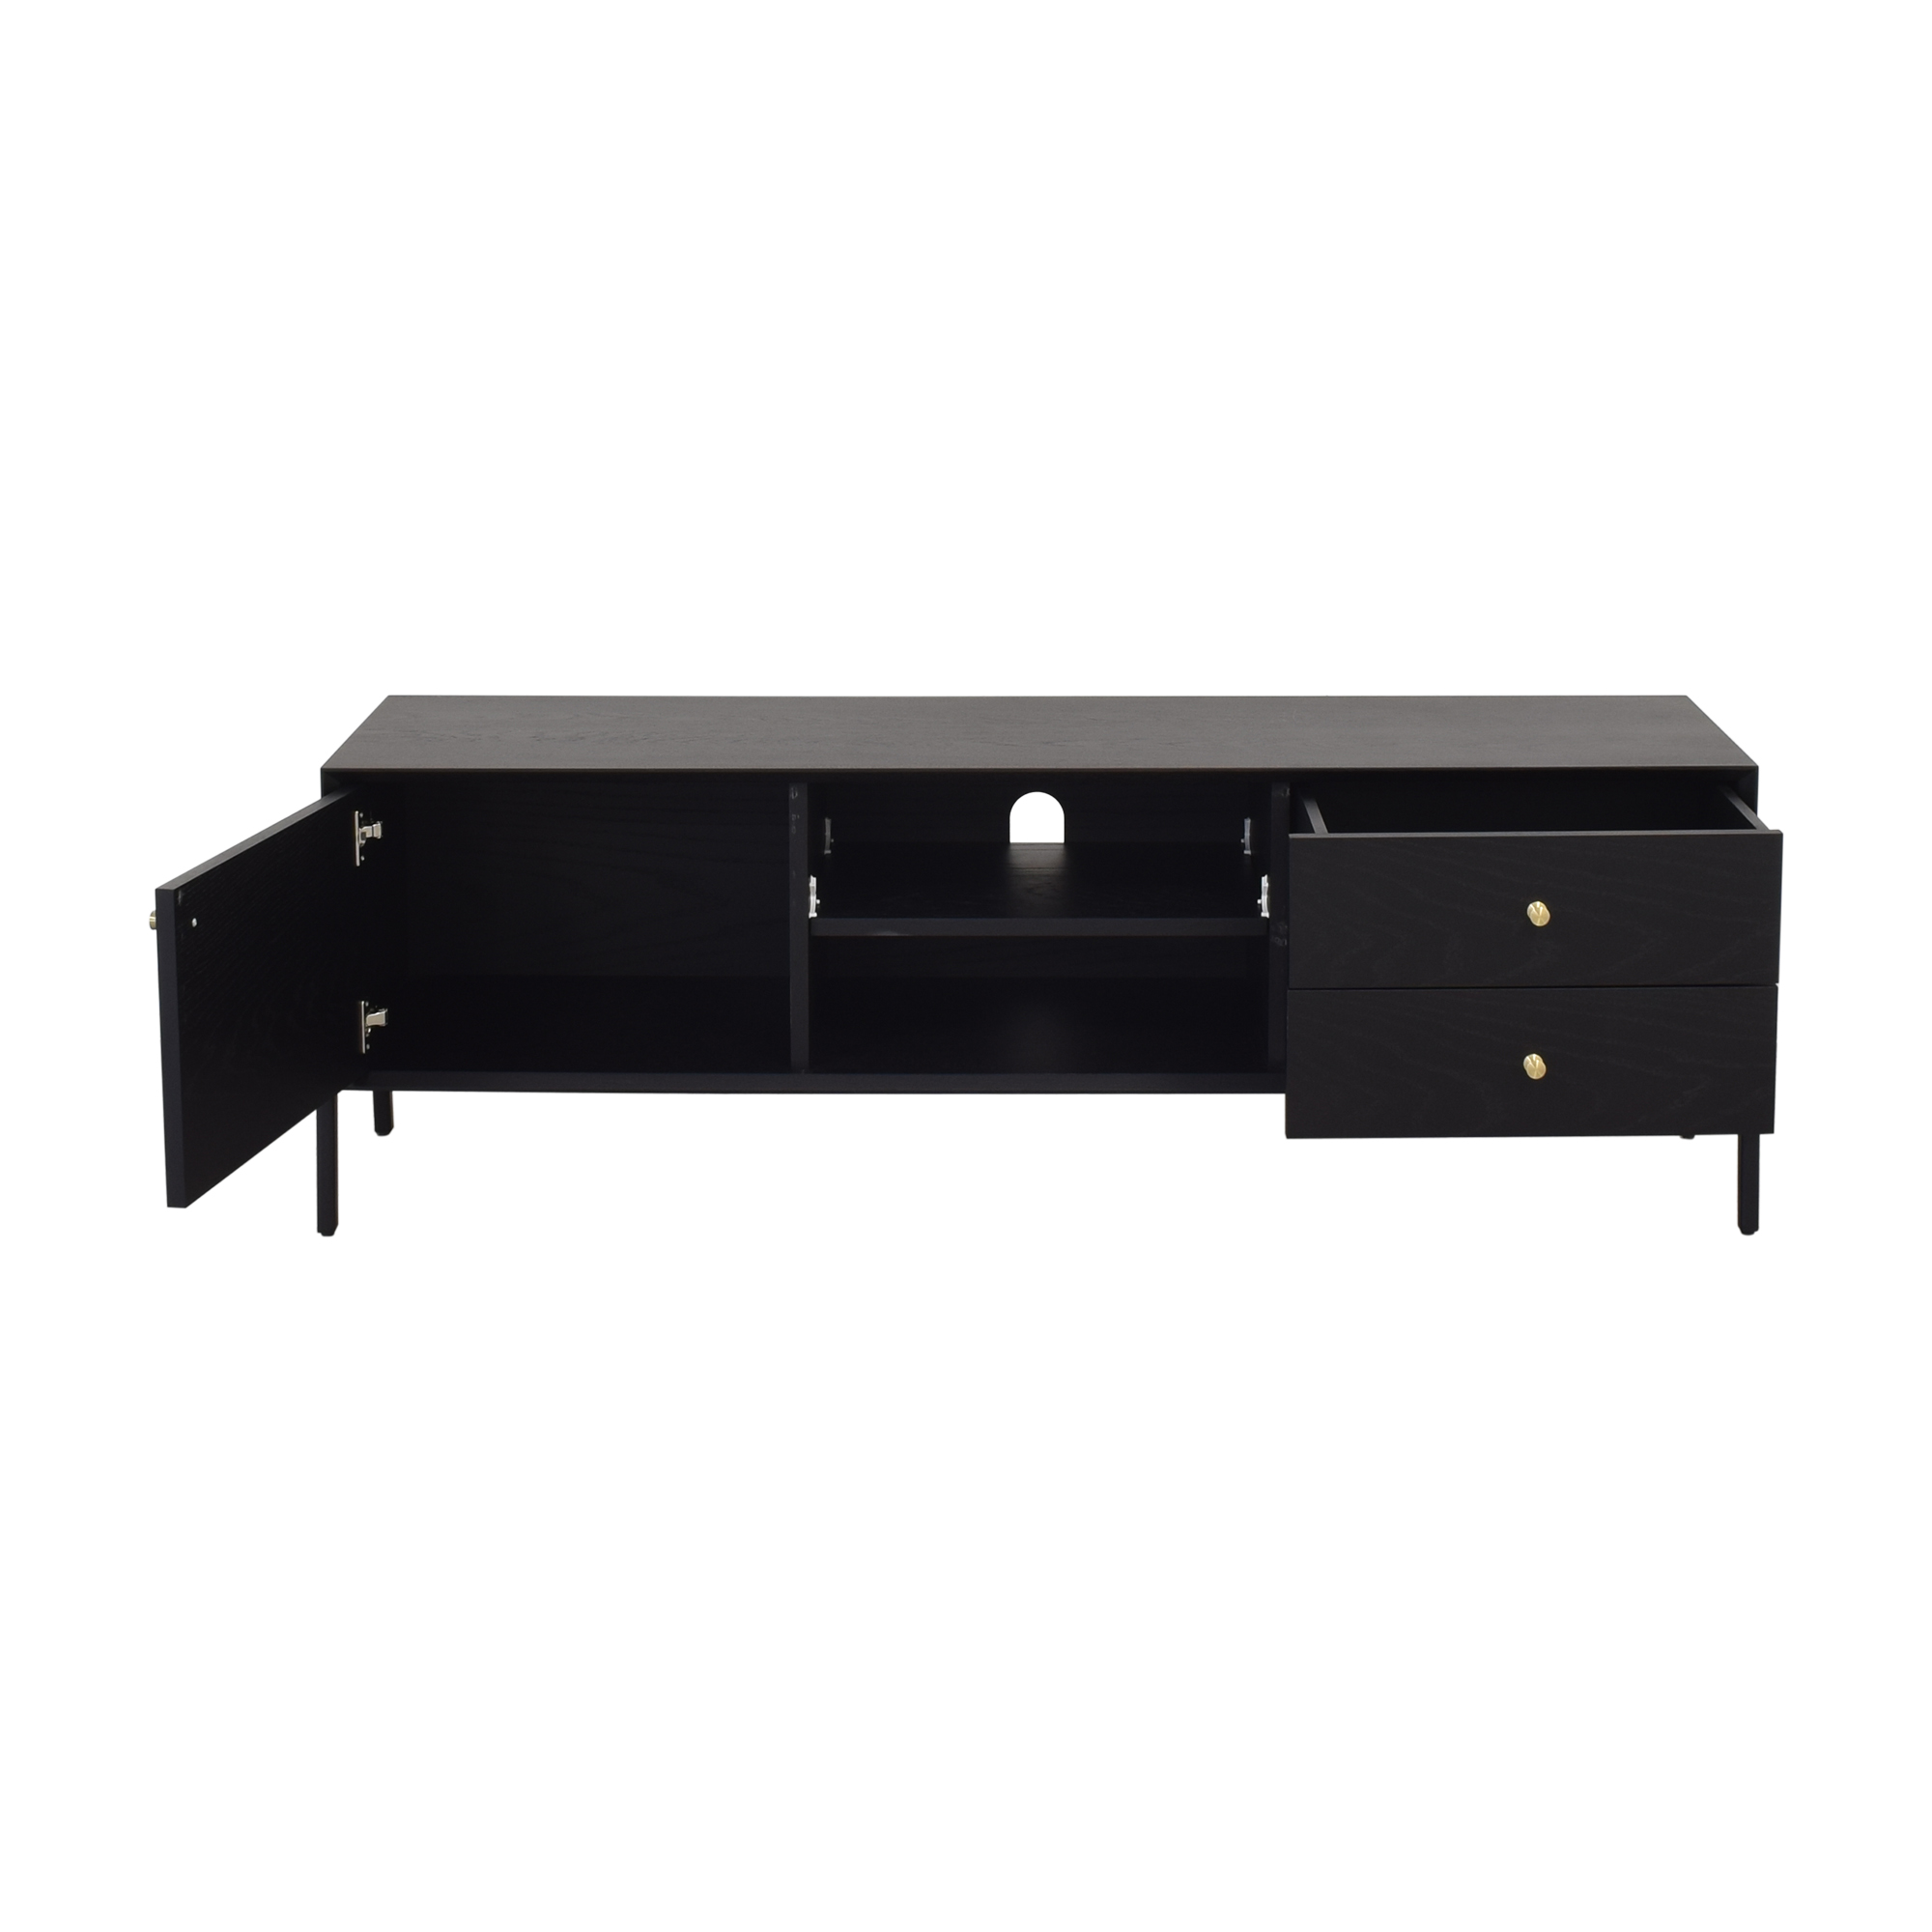 Media Cabinet with Two Drawers Storage